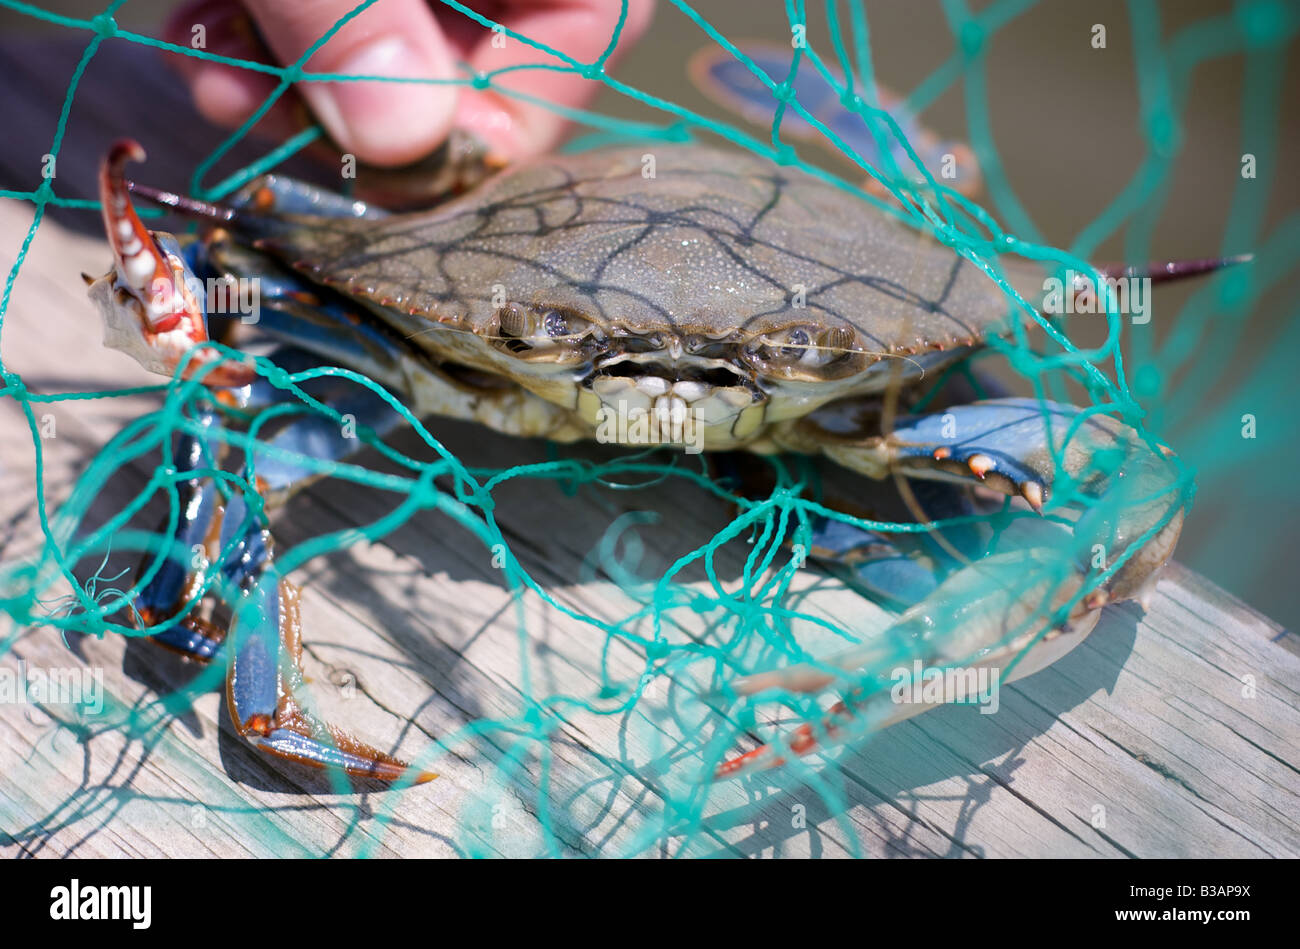 Blue Crab Caught in green net at Chesapeake Bay Maryland USA - Stock Image